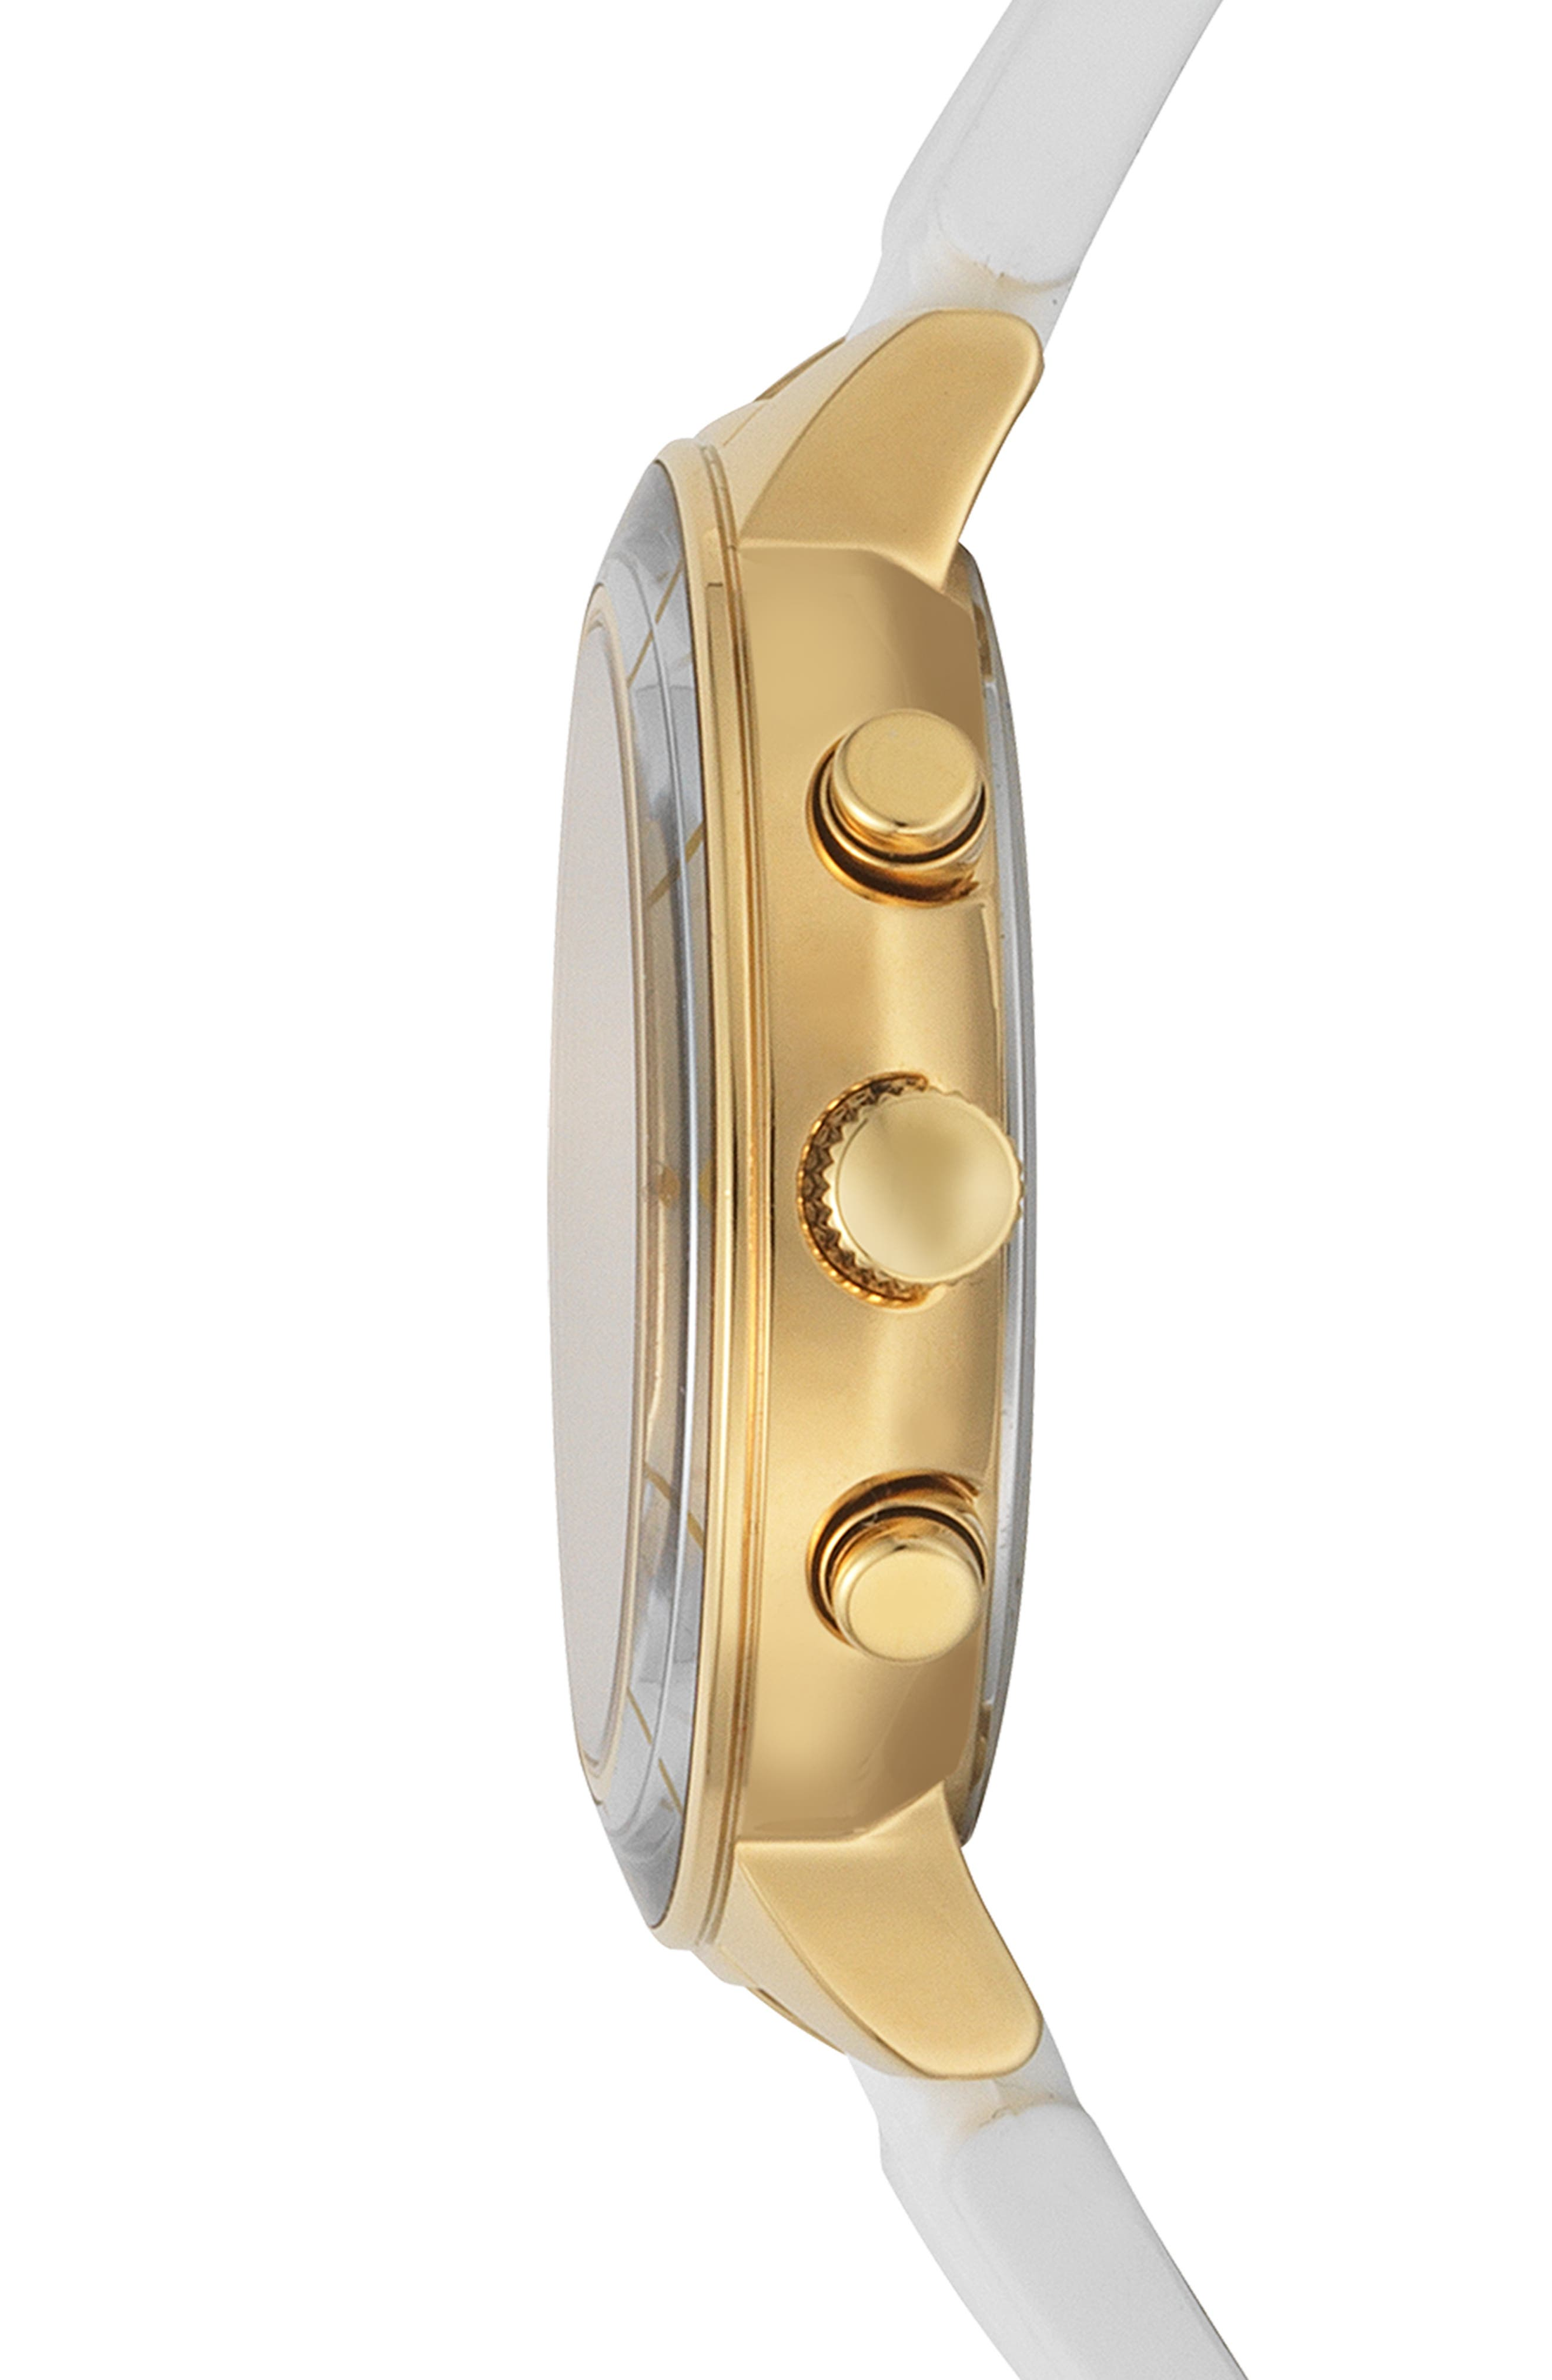 VERSUS VERSACE, Harbour Heights Silicone Strap Watch, 38mm, Alternate thumbnail 2, color, WHITE/ GOLD